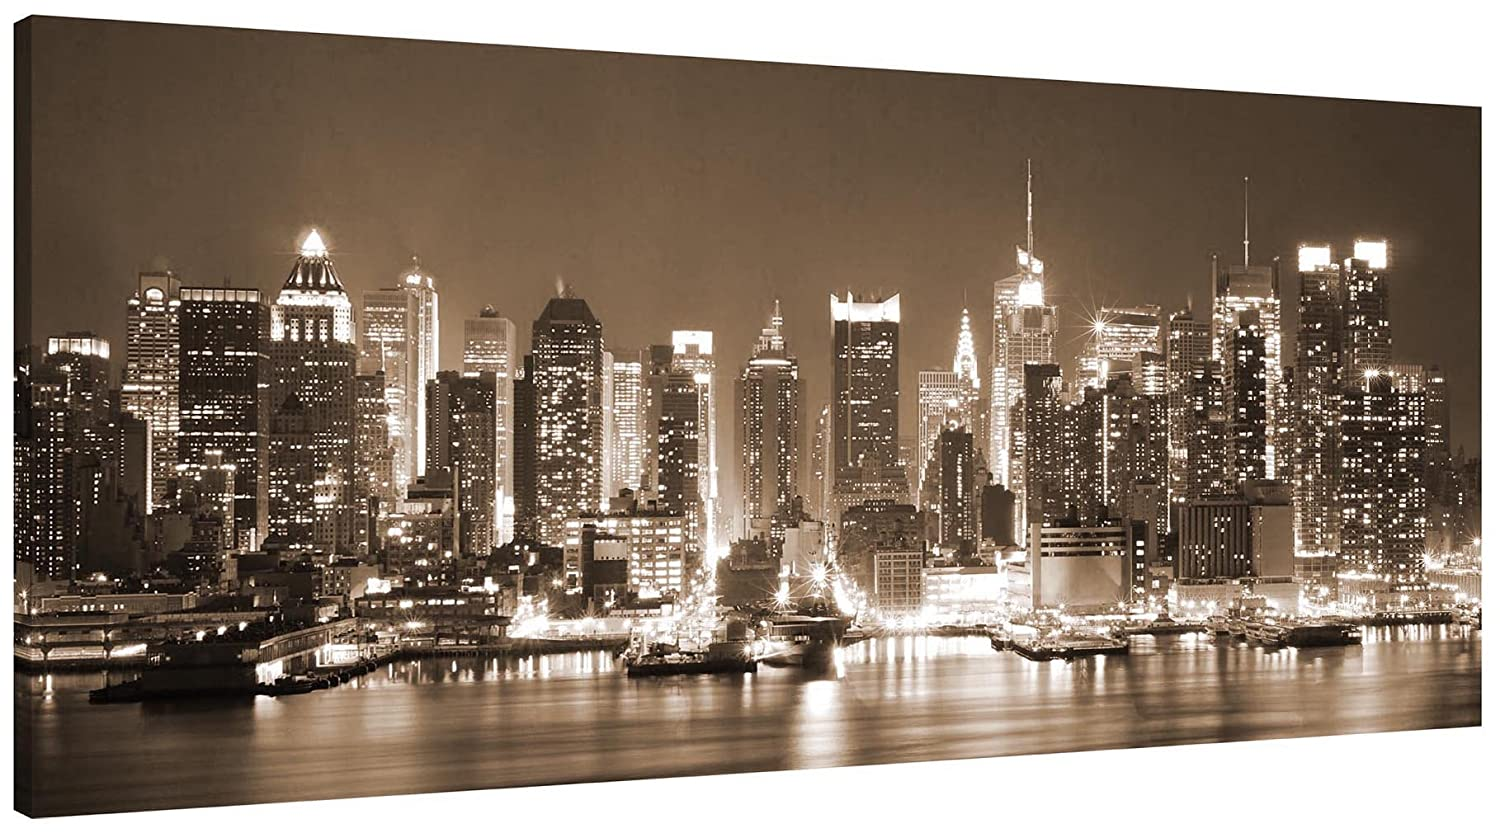 Canvas Picture New York at Night in Mono - Panorama stretched and mounted around a 30 x 14 inch (76cm x 35cm) wooden frame by Pixel Zone Pixel Zone Ltd